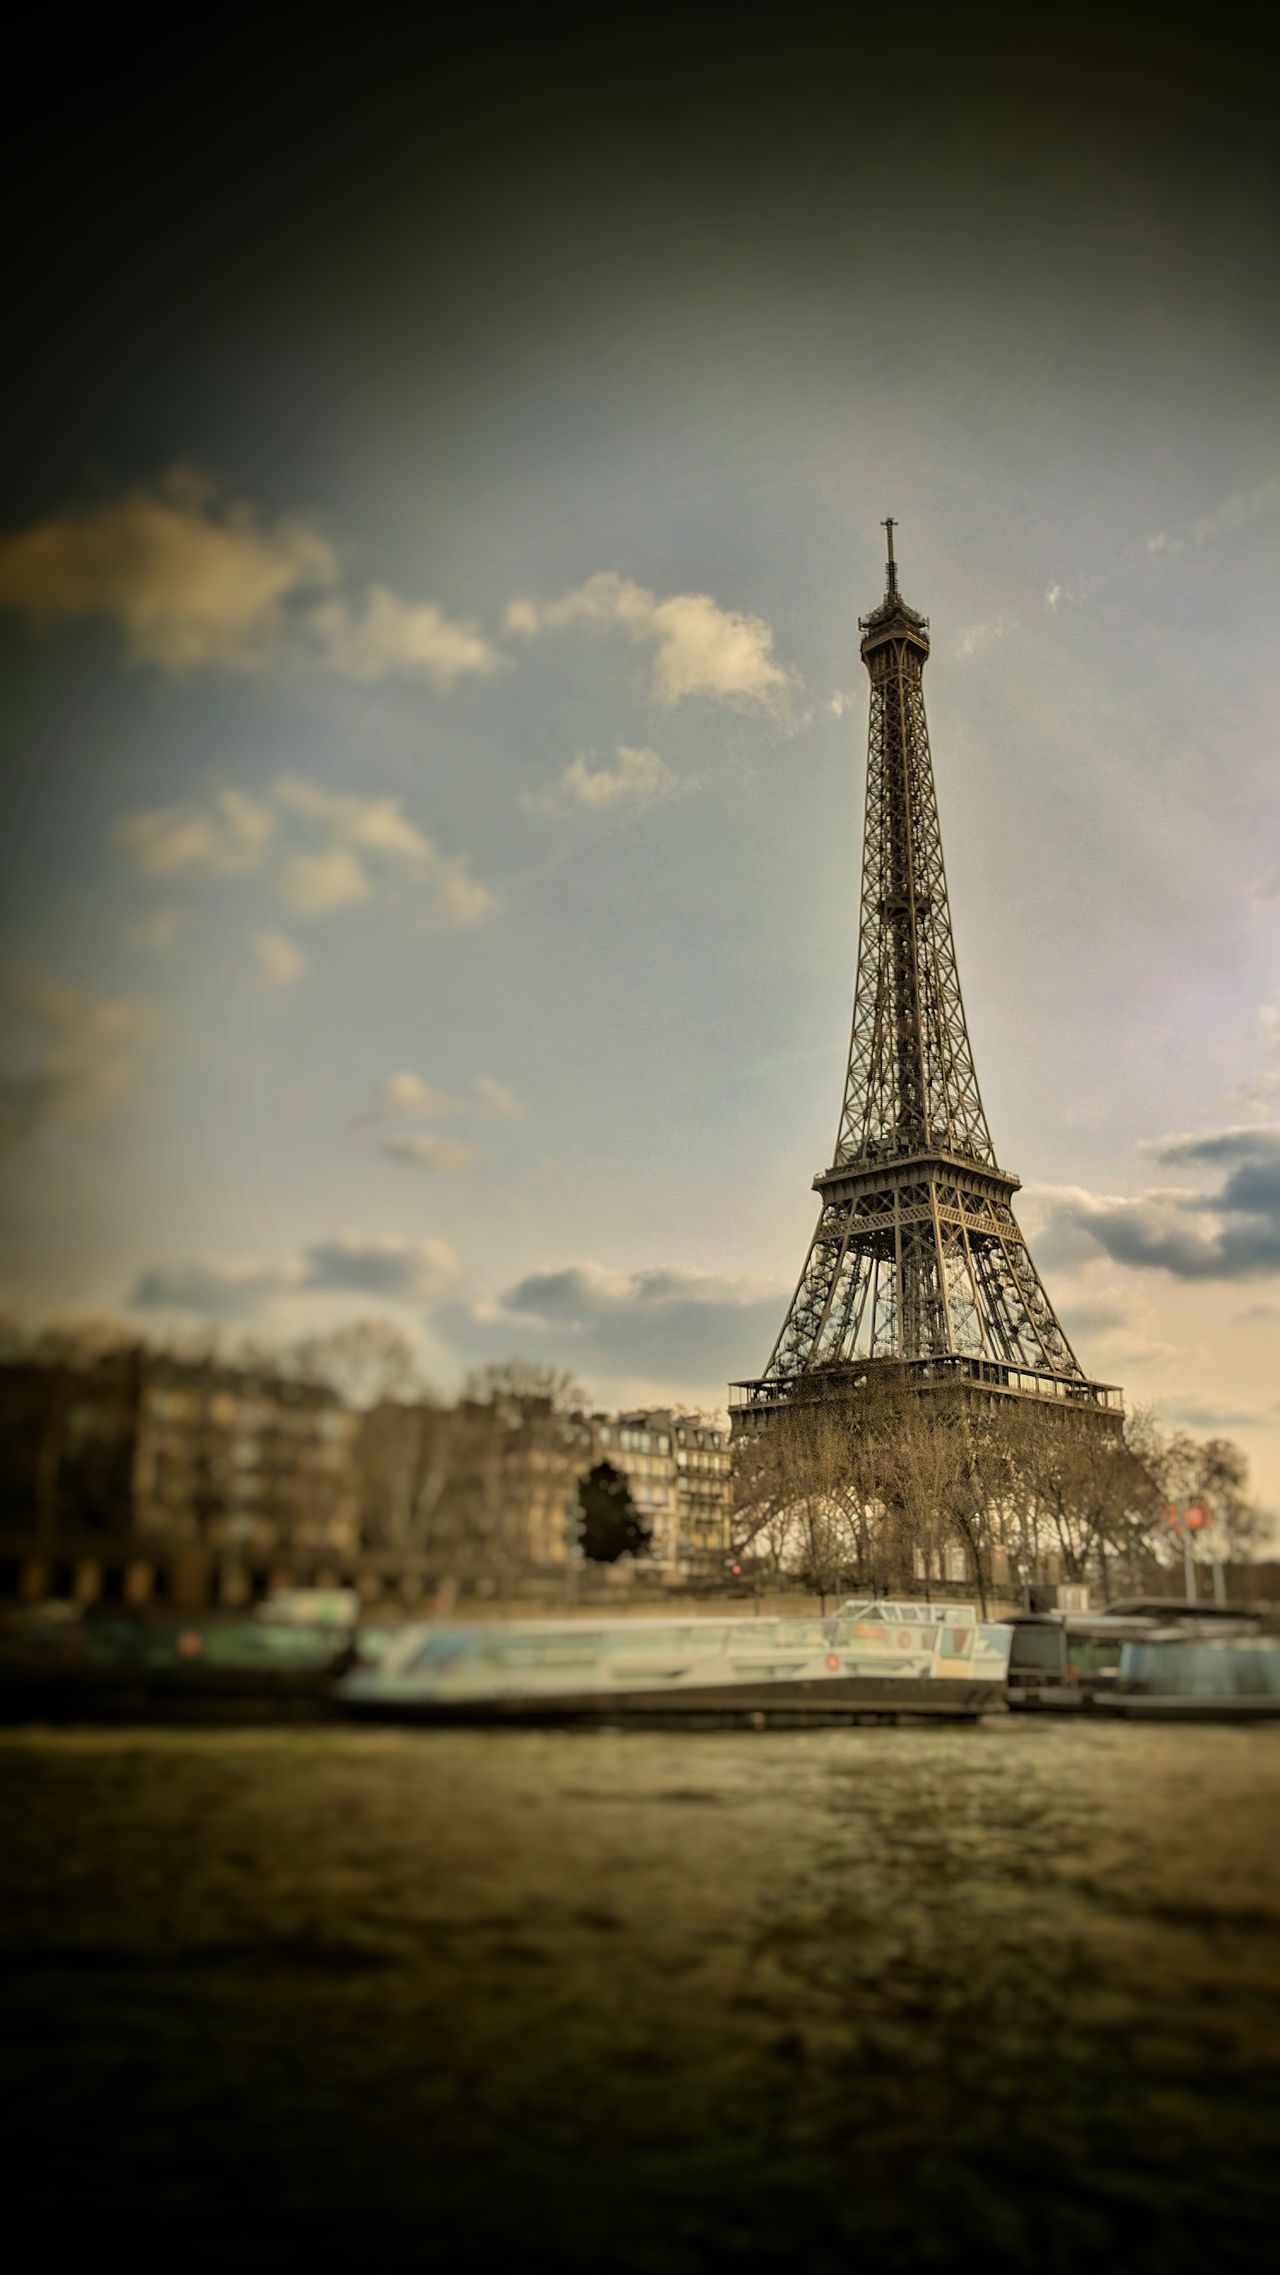 Le Tour Eiffel City Cultures Travel Destinations Travel Tower History City Break Architecture Built Structure Cityscape Outdoors Water Travel France🇫🇷 Paris Nexus 6P Scenics Seine